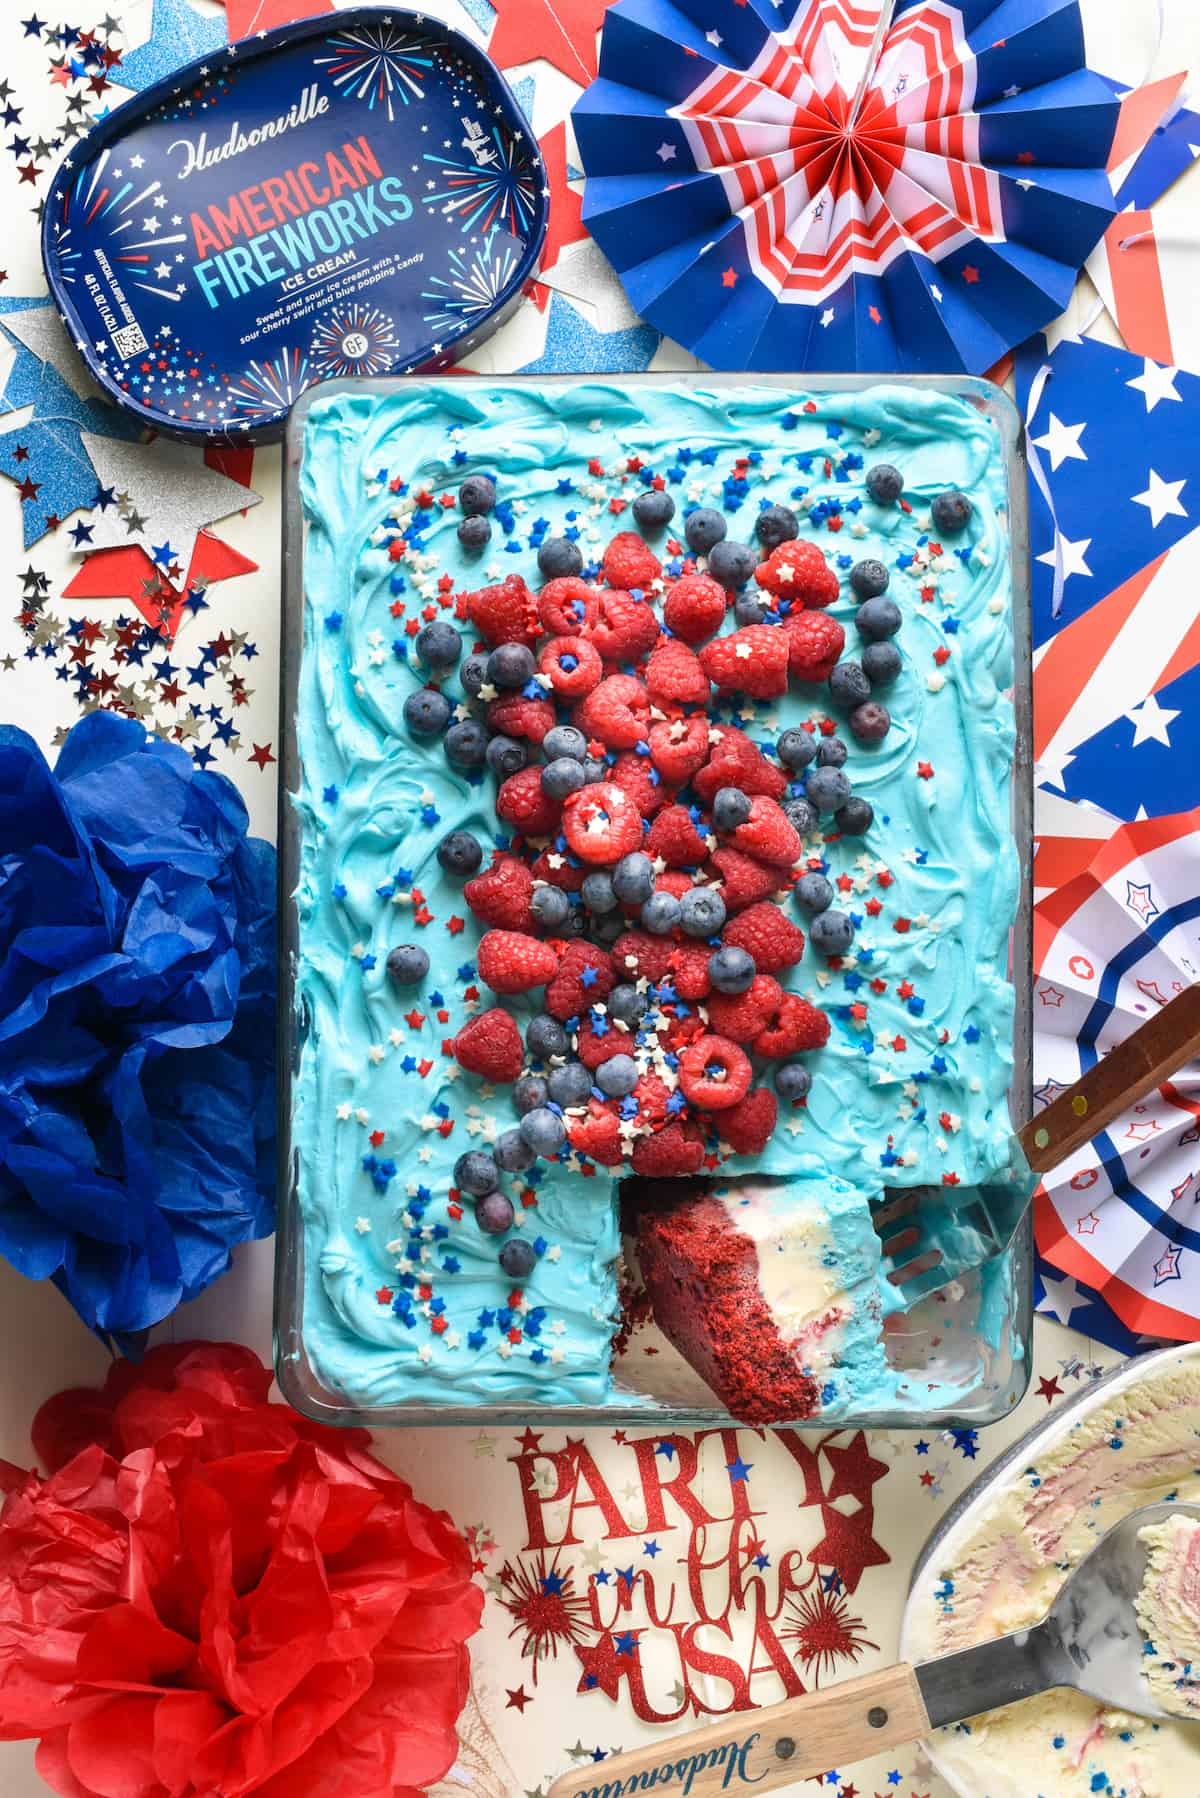 Overhead shot of red white and blue ice cream cake with one piece cut and turned. Cake is topped with berries and sprinkles.